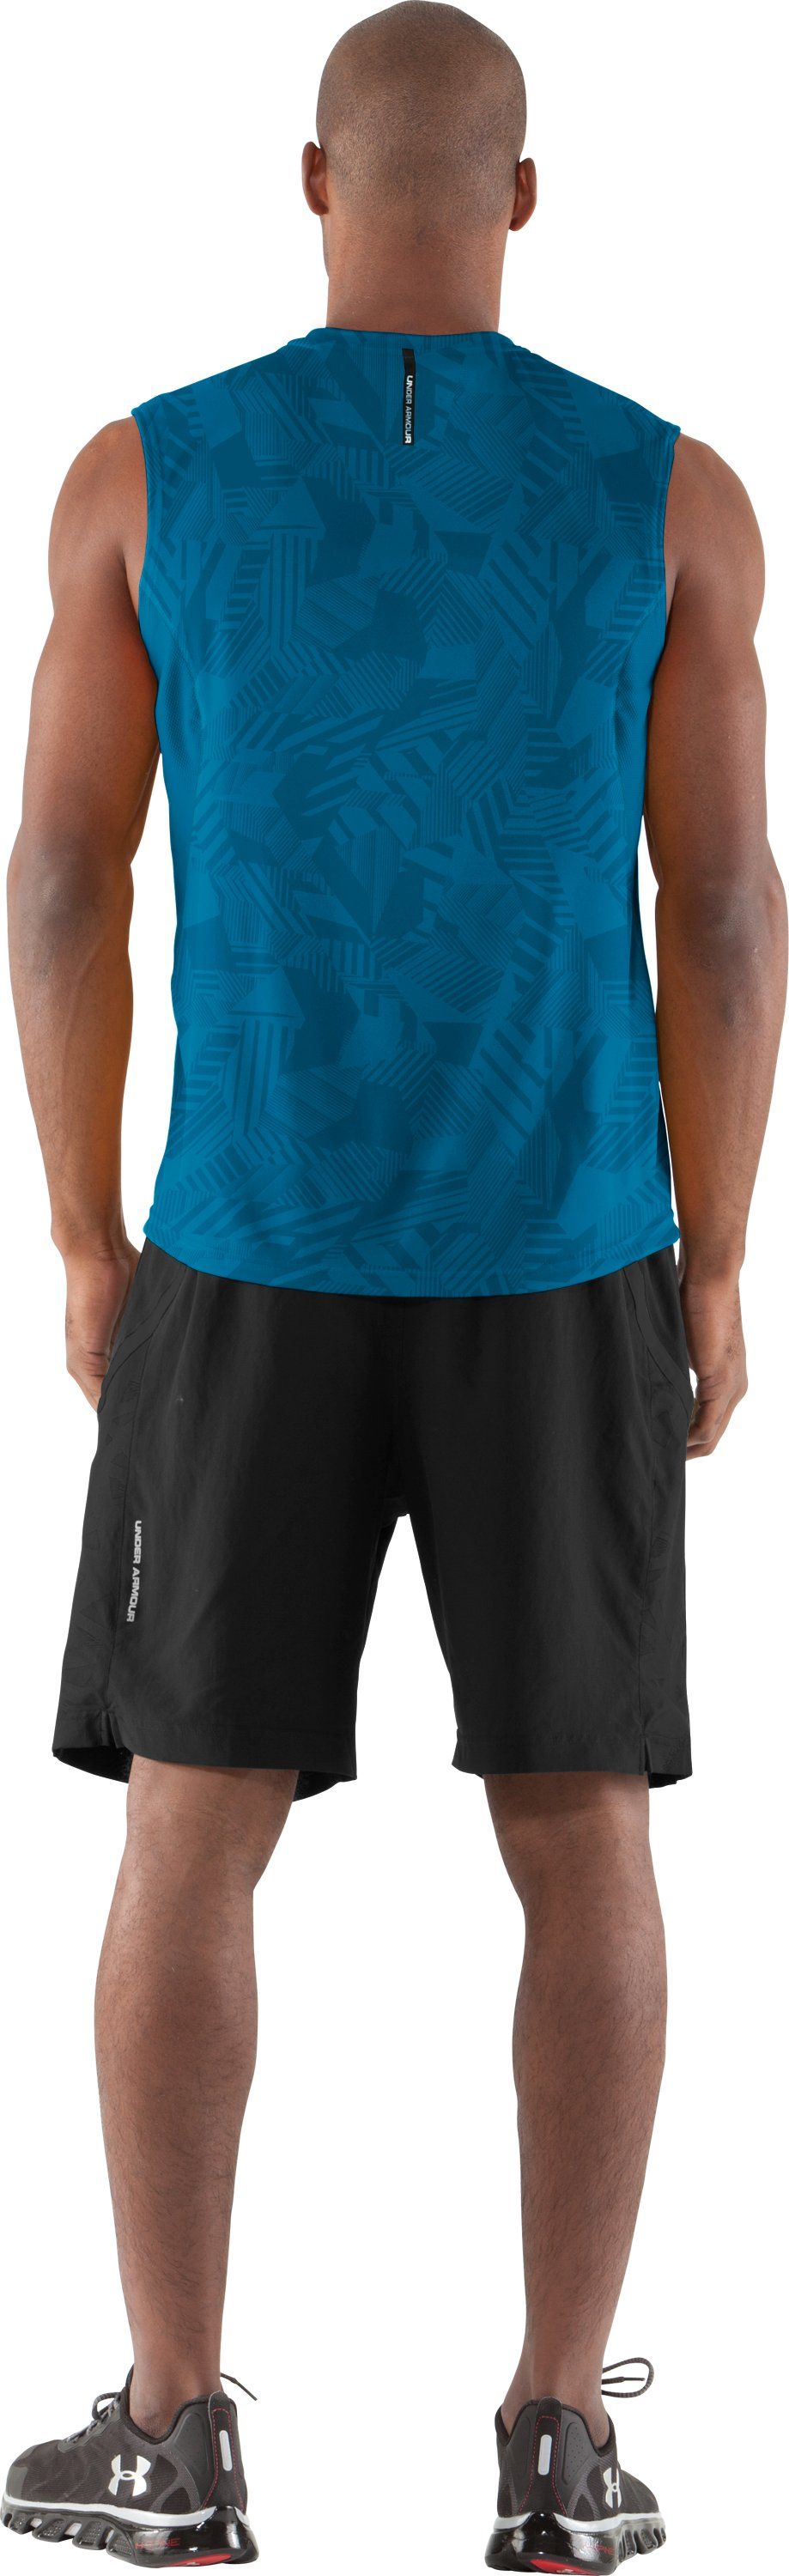 Men's coldblack® Engage Run Sleeveless T-Shirt, SNORKEL, Back